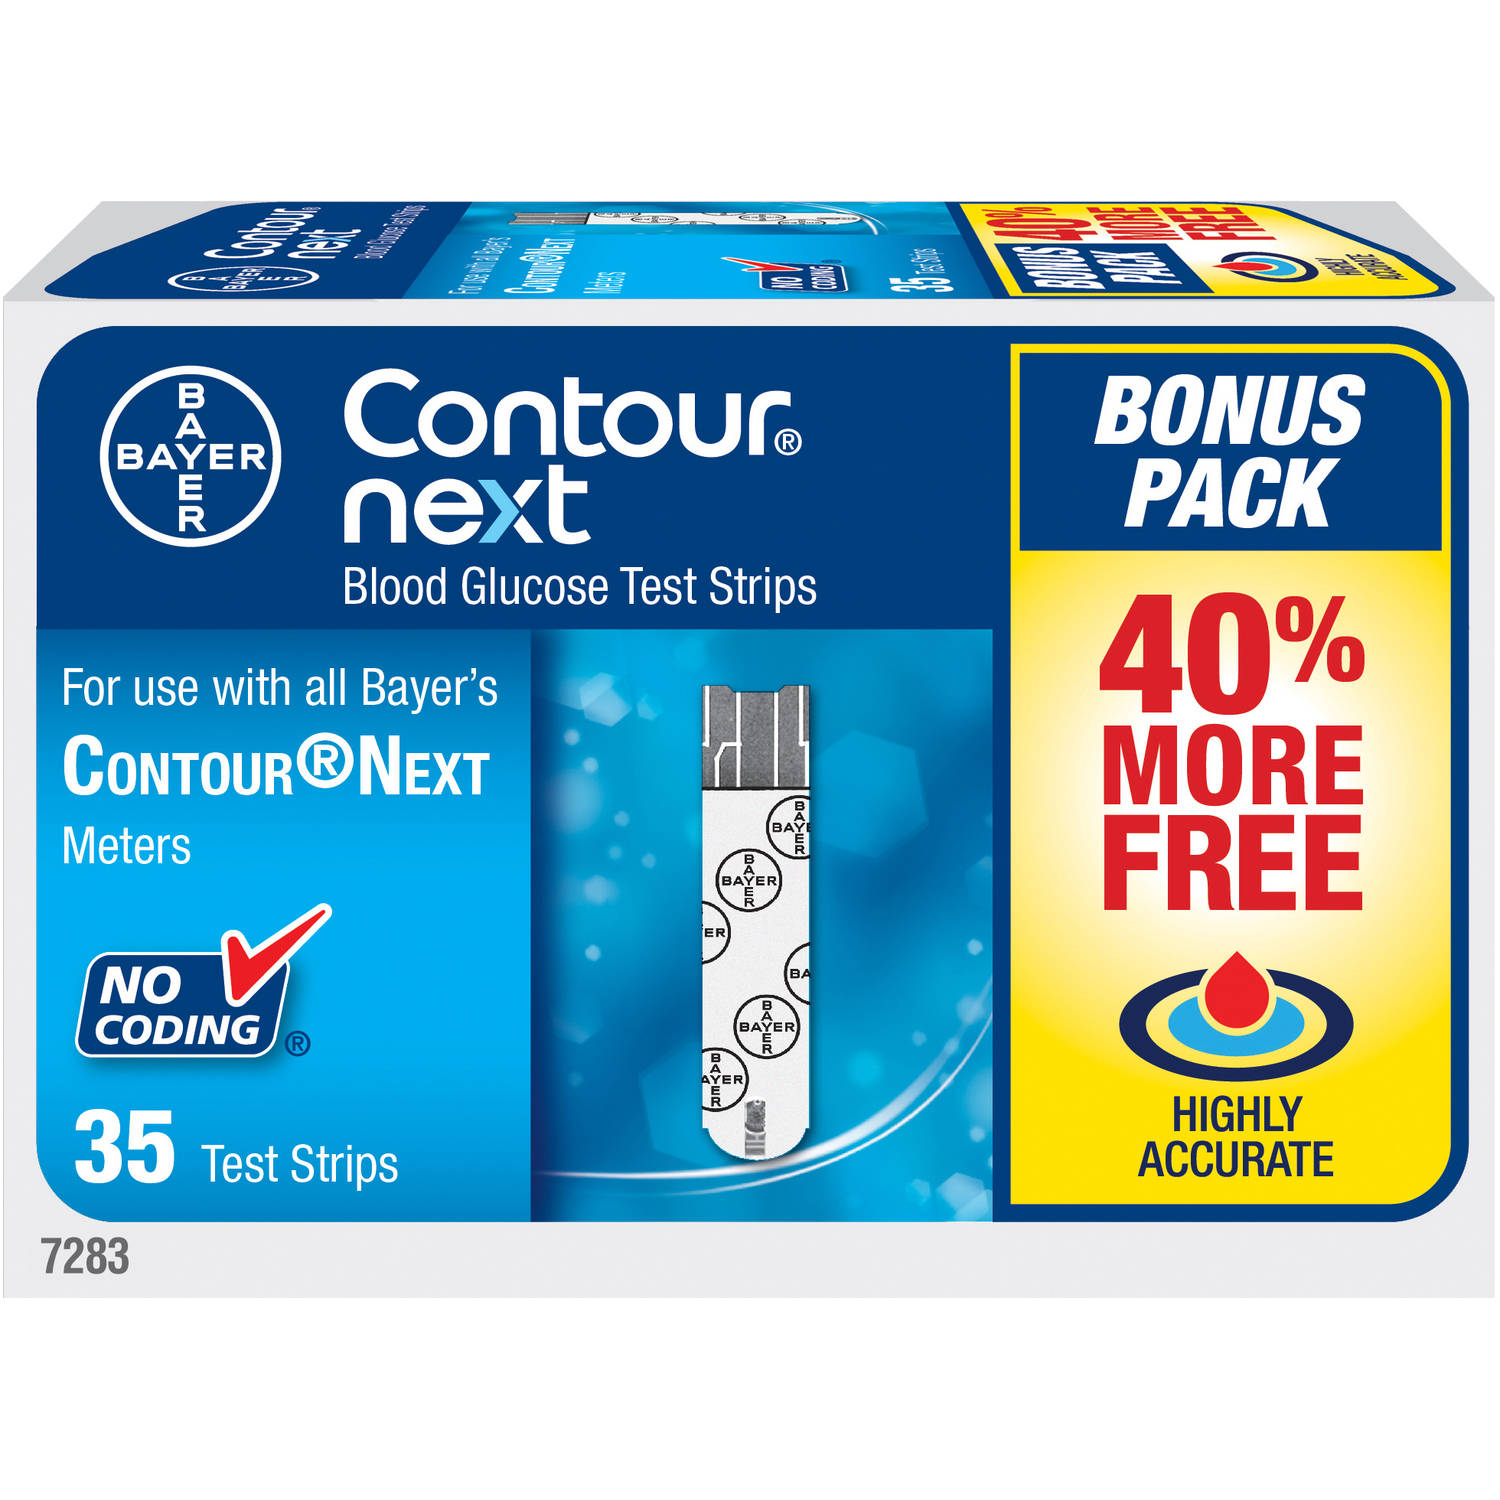 Bayer Contour Next Blood Glucose Test Strips, 35 count